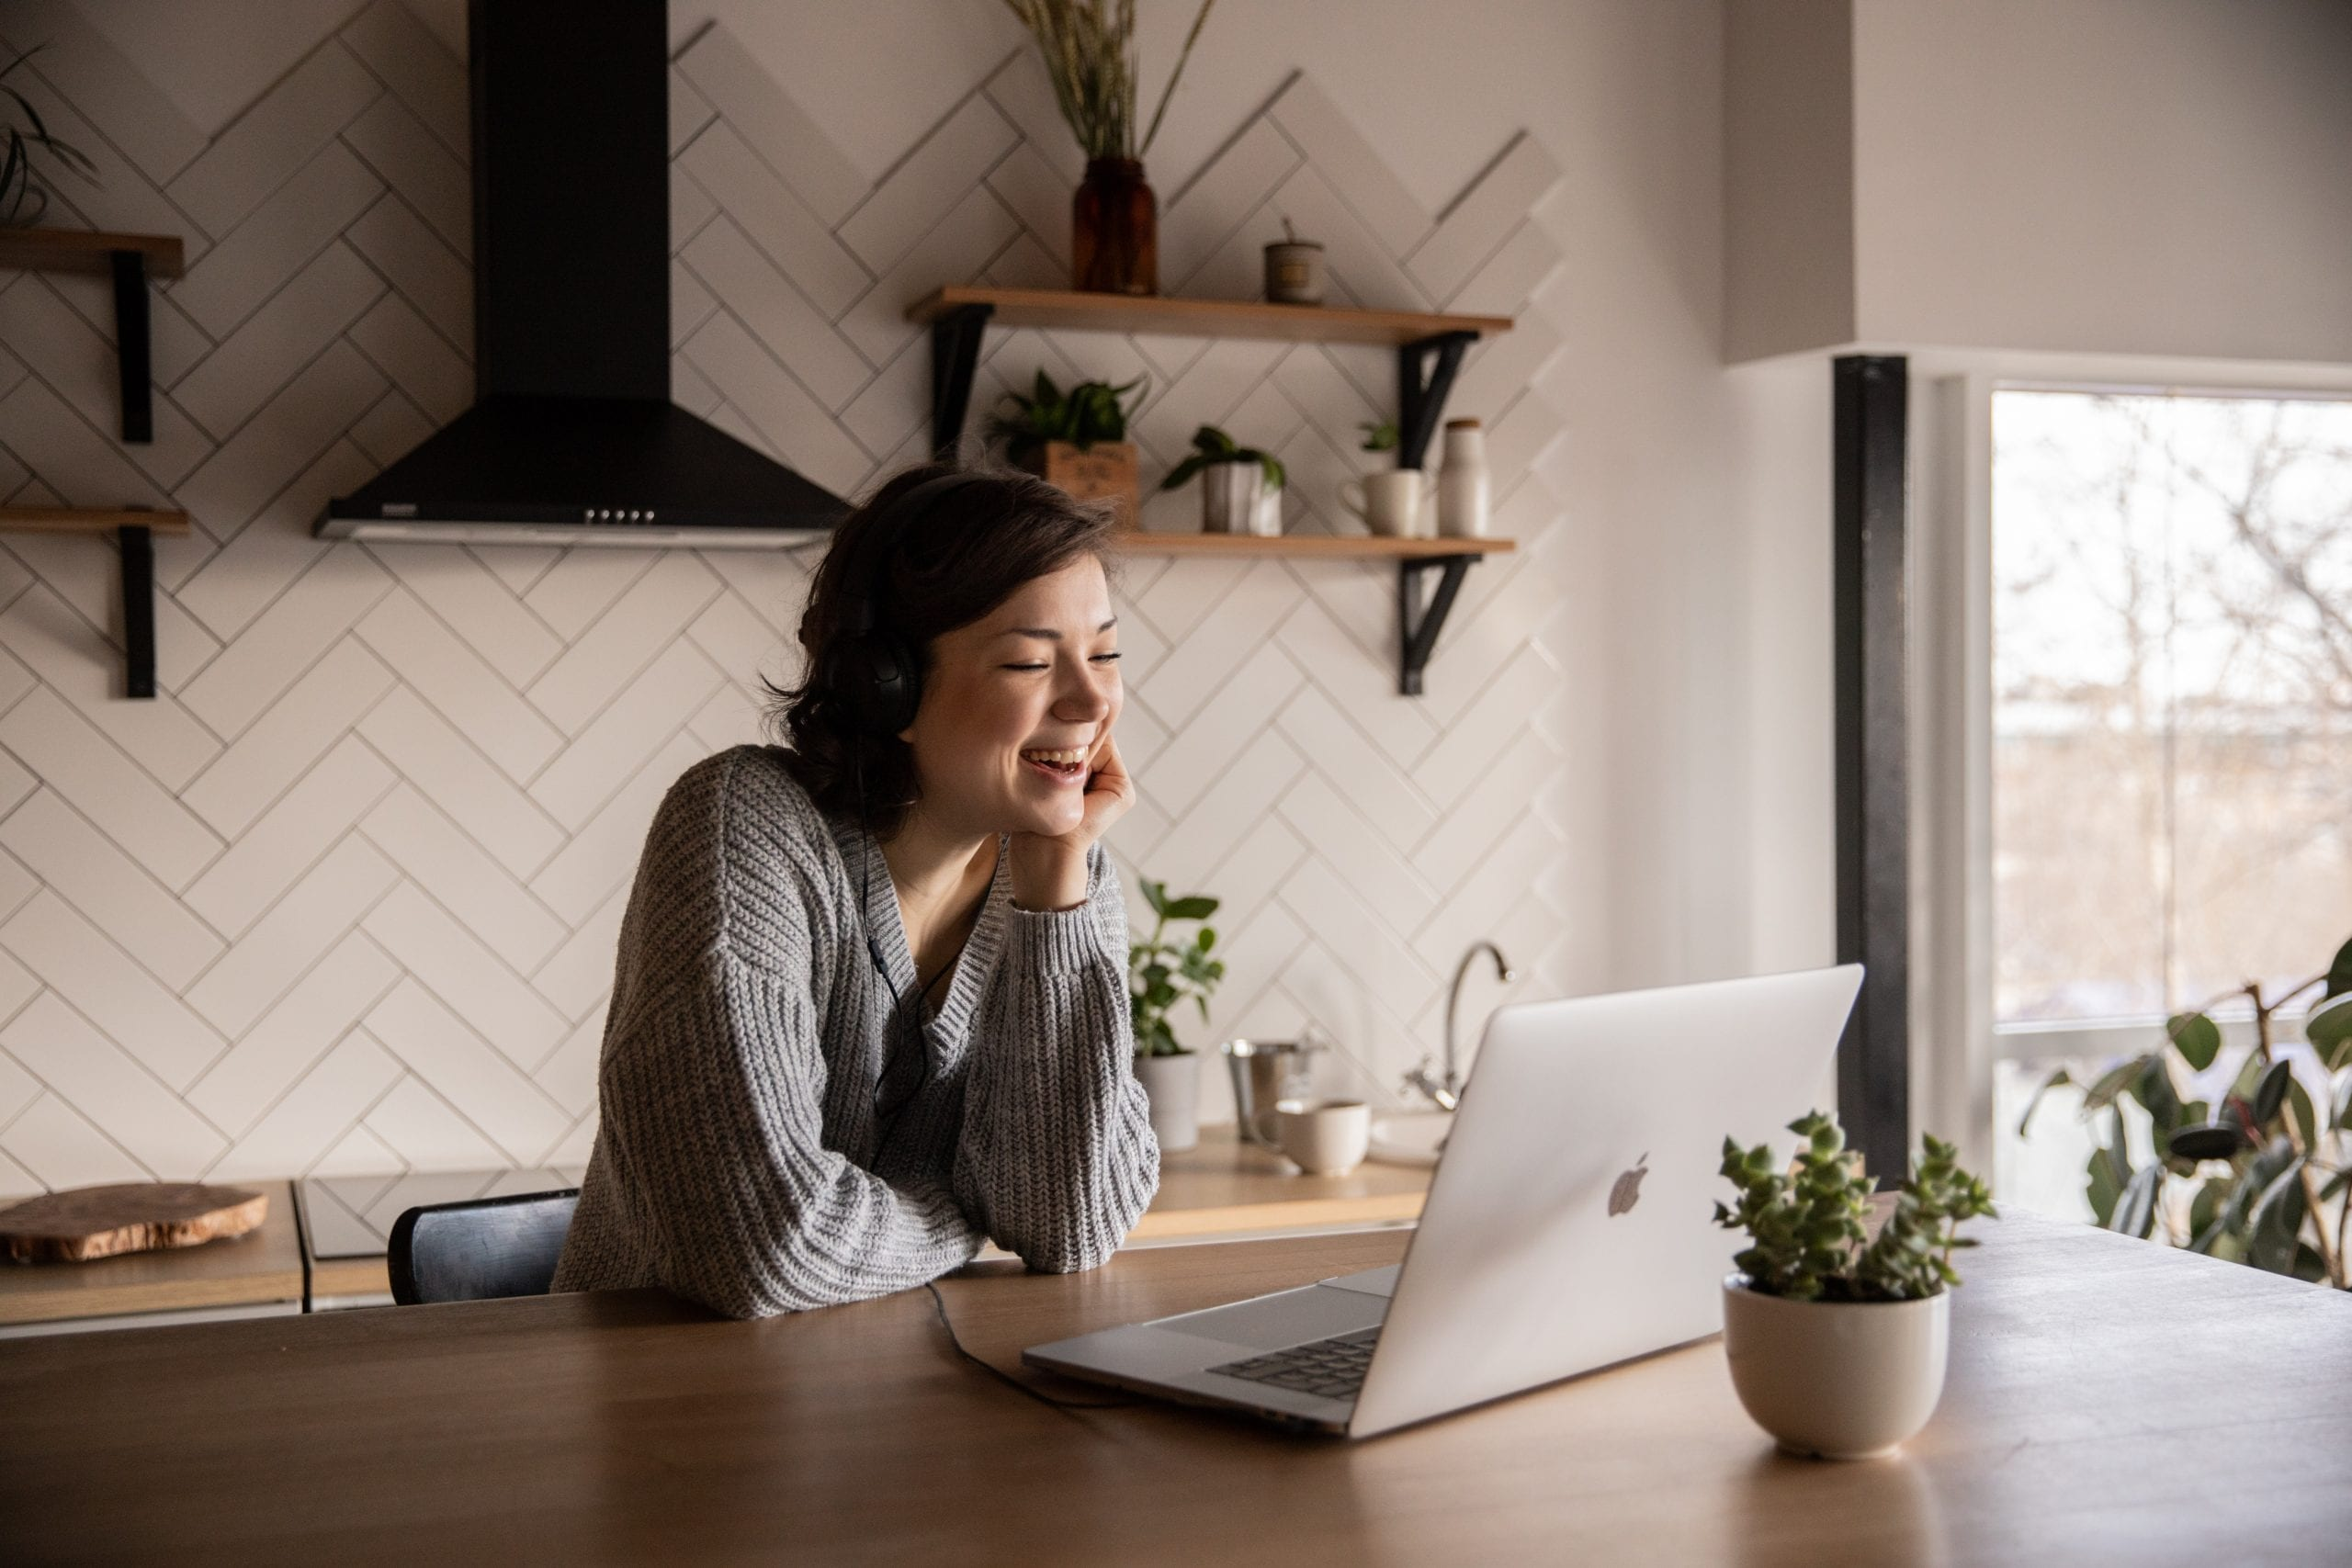 Woman working on a virtual kitchen design on her computer in her own kitchen.